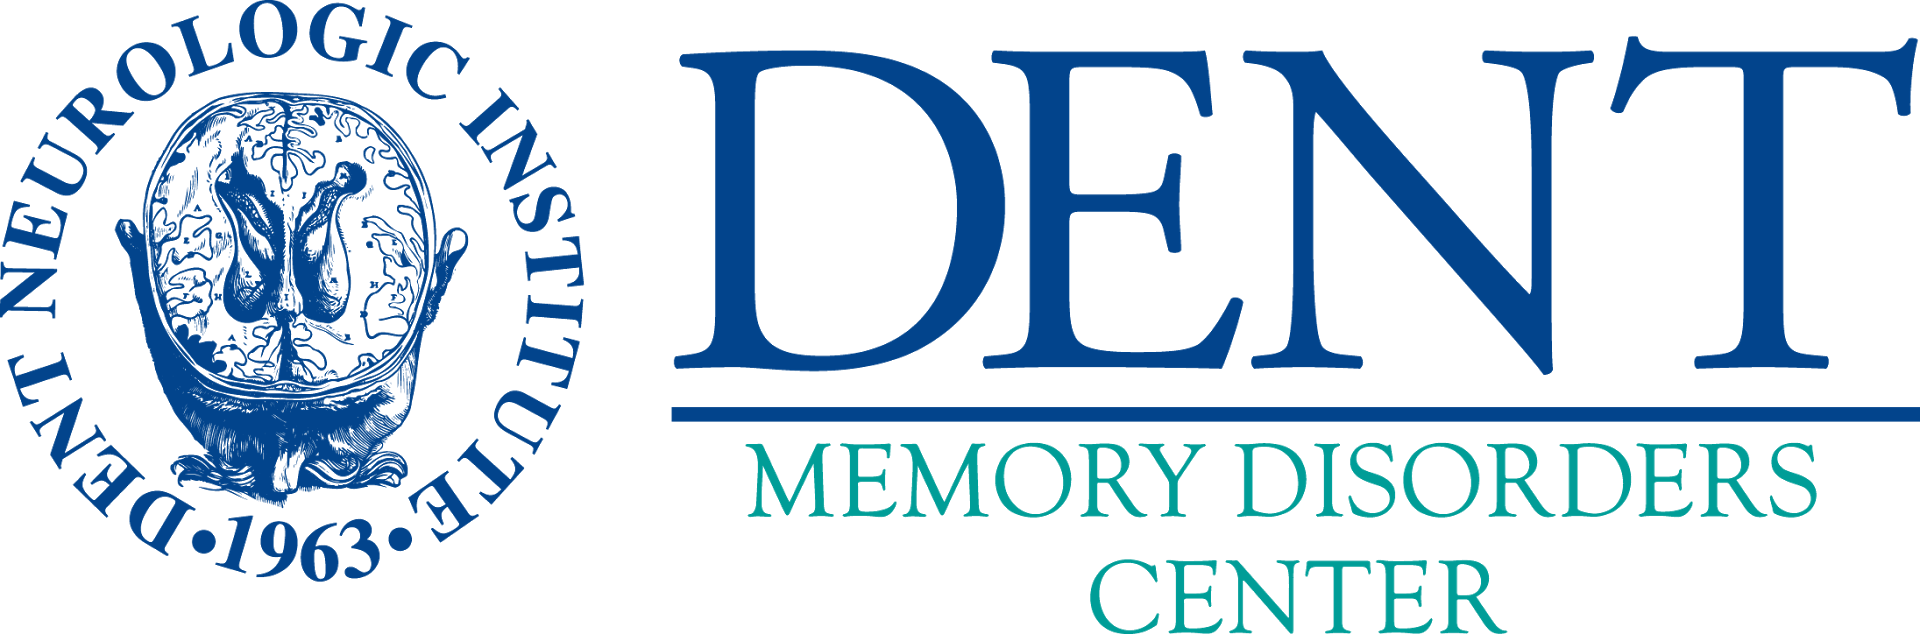 4. Dent Neurological Institute (Premier)